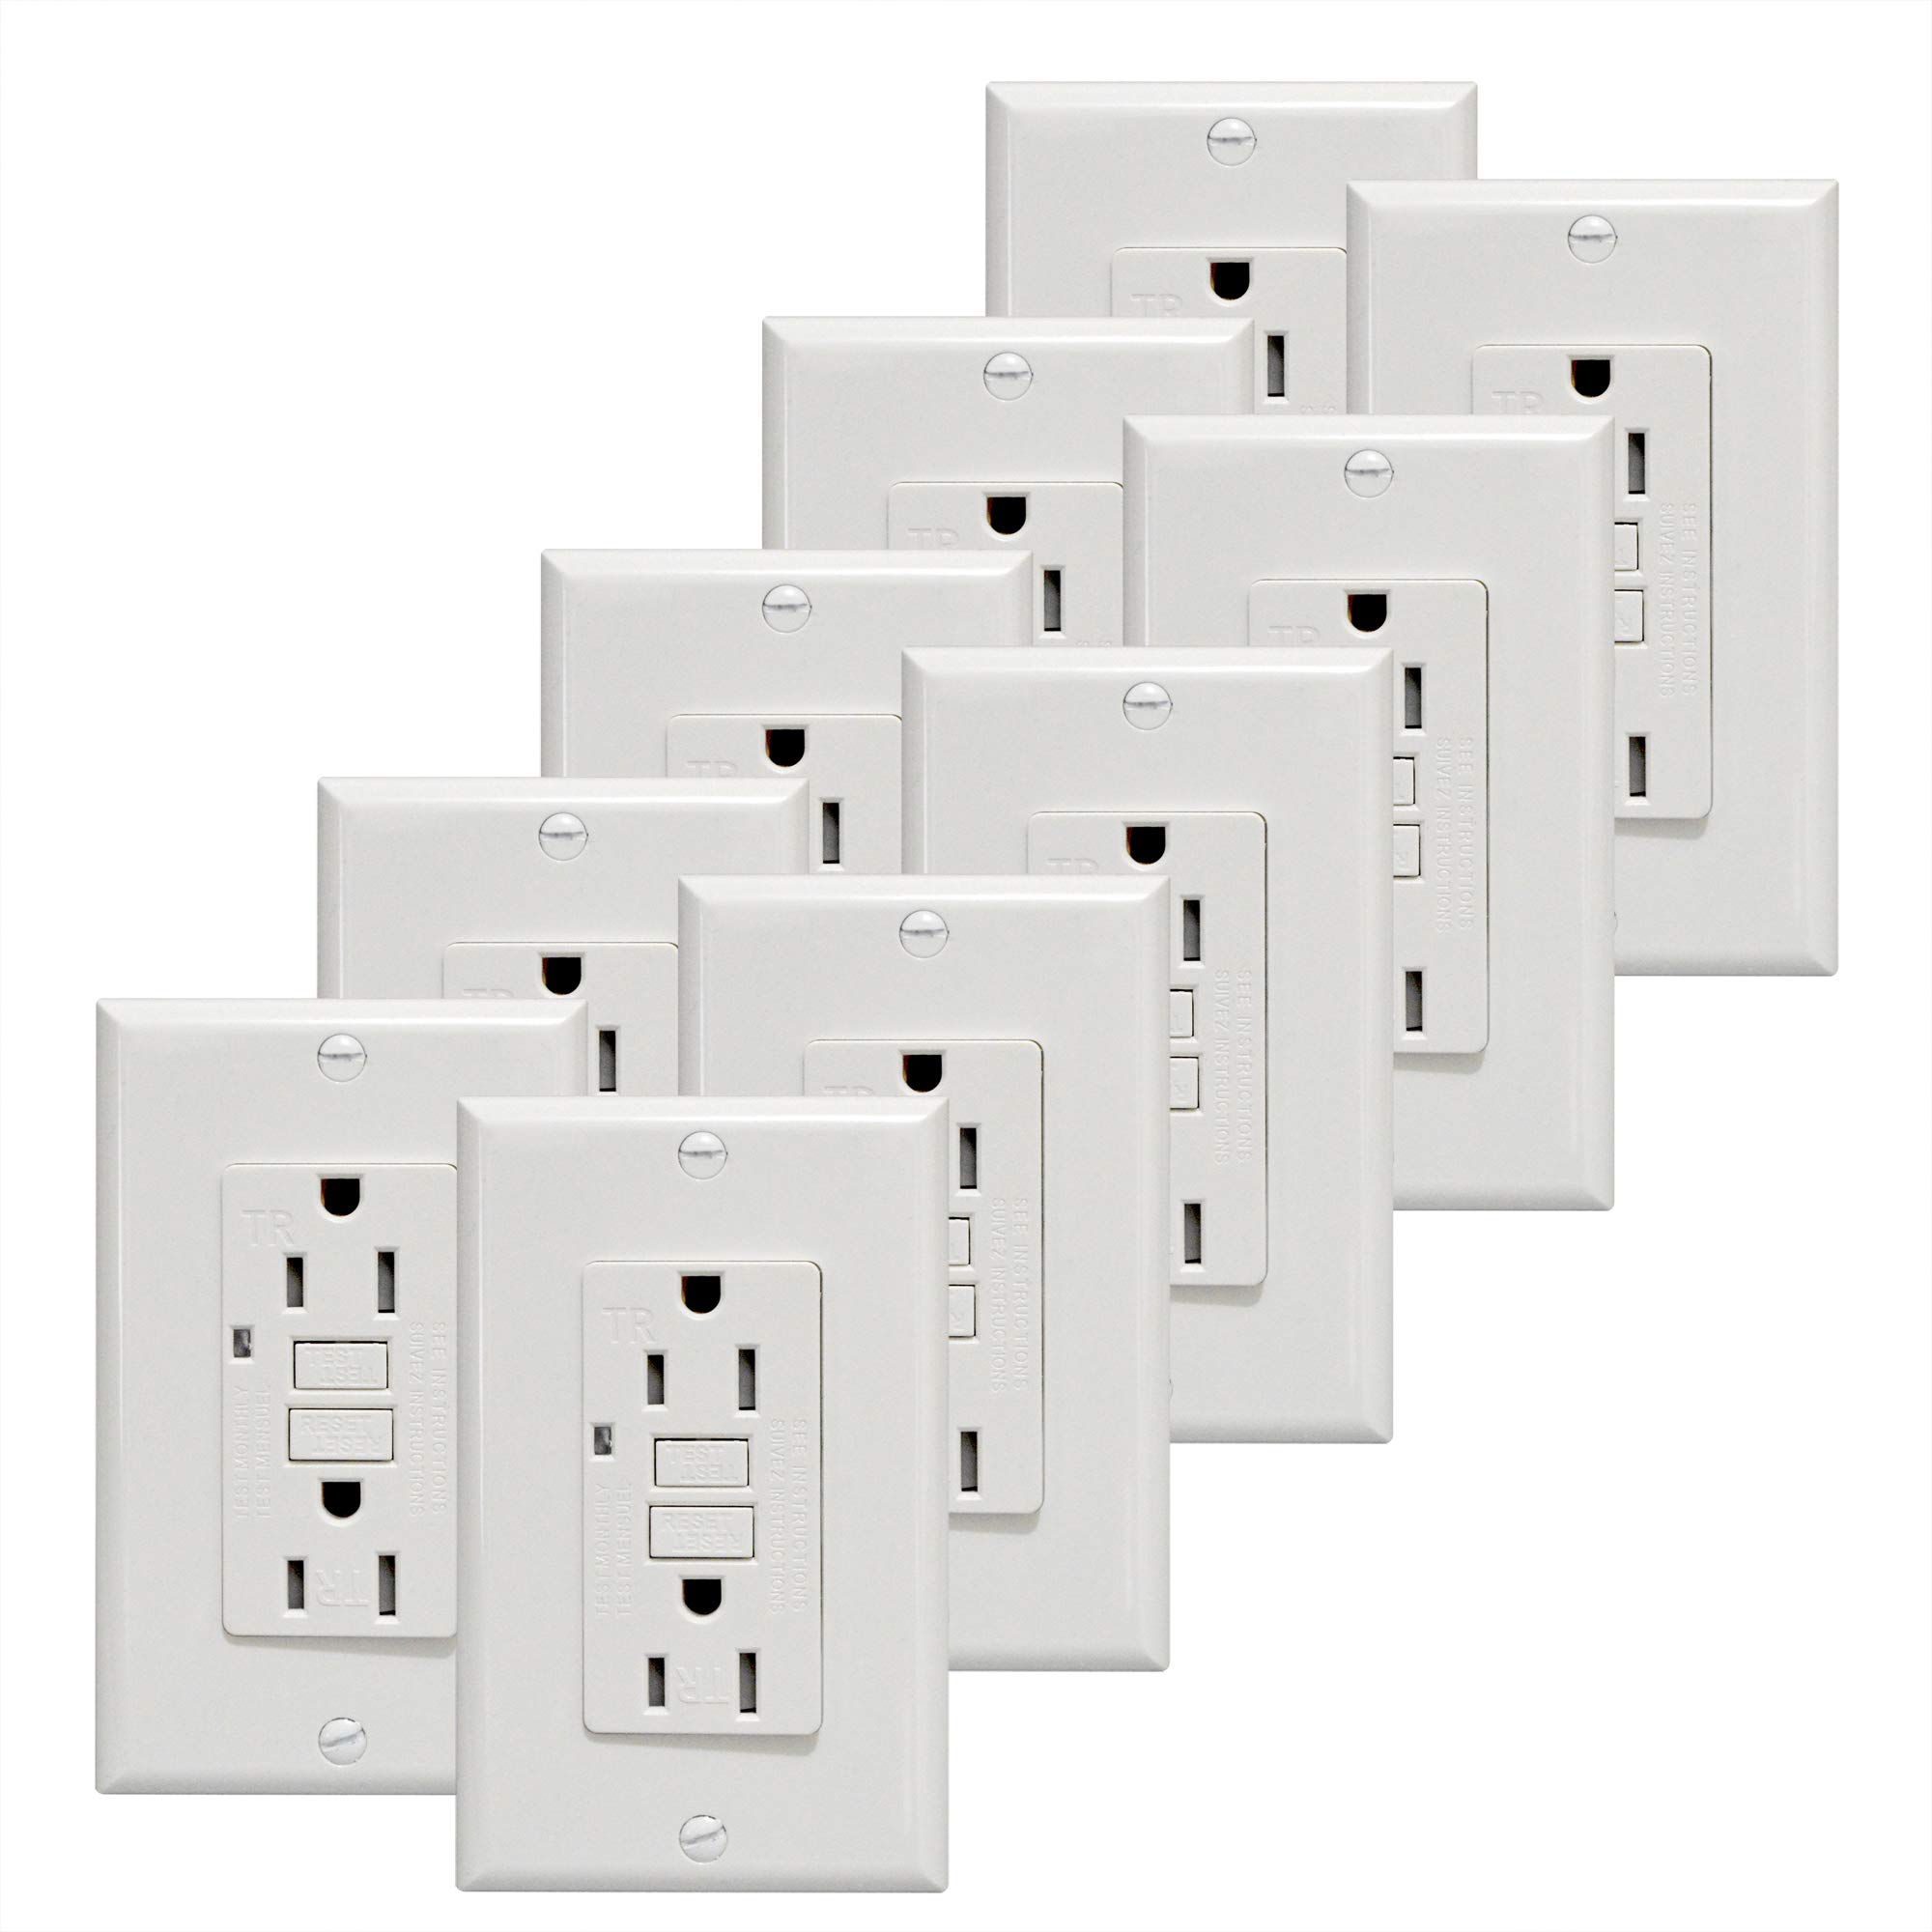 GFCI Outlet 15A Standard Decorative Tamper Resistant Duplex Receptacle with LED Indicator, Ground Fault Circuit Interrupter, Decorative Wallplate, Safelock Protection, UL Listed, White 10-Pack